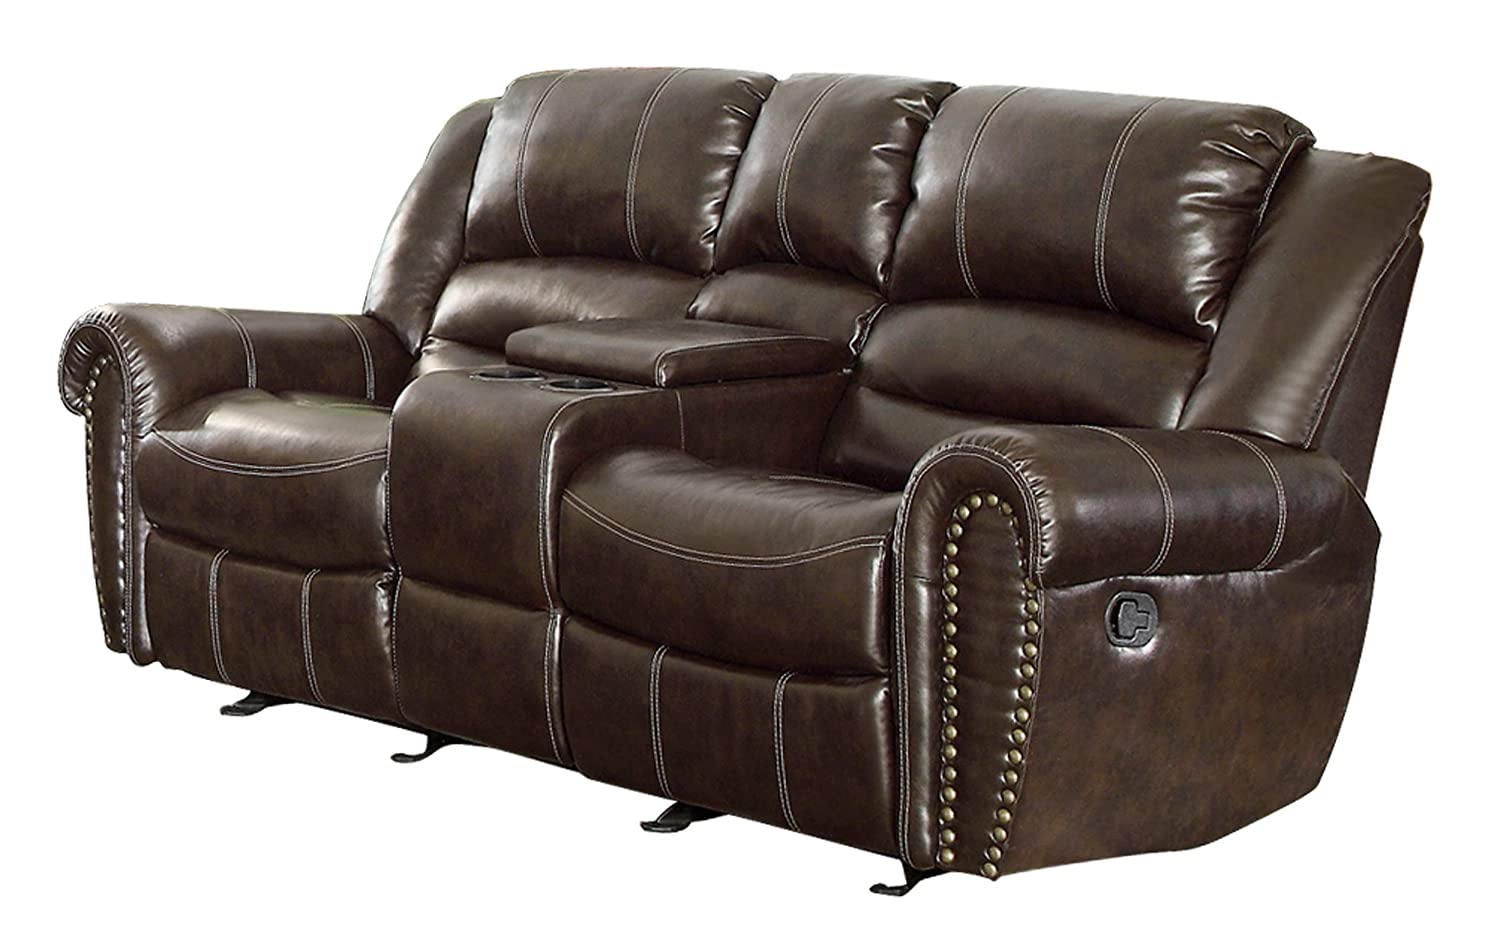 loveseat recliner loveseat recliners best loveseat recliner best loveseat recliners loveseat recliner  sc 1 st  Comfortable recliner.com & best loveseat recliners Archives - Comfortable recliner.com islam-shia.org